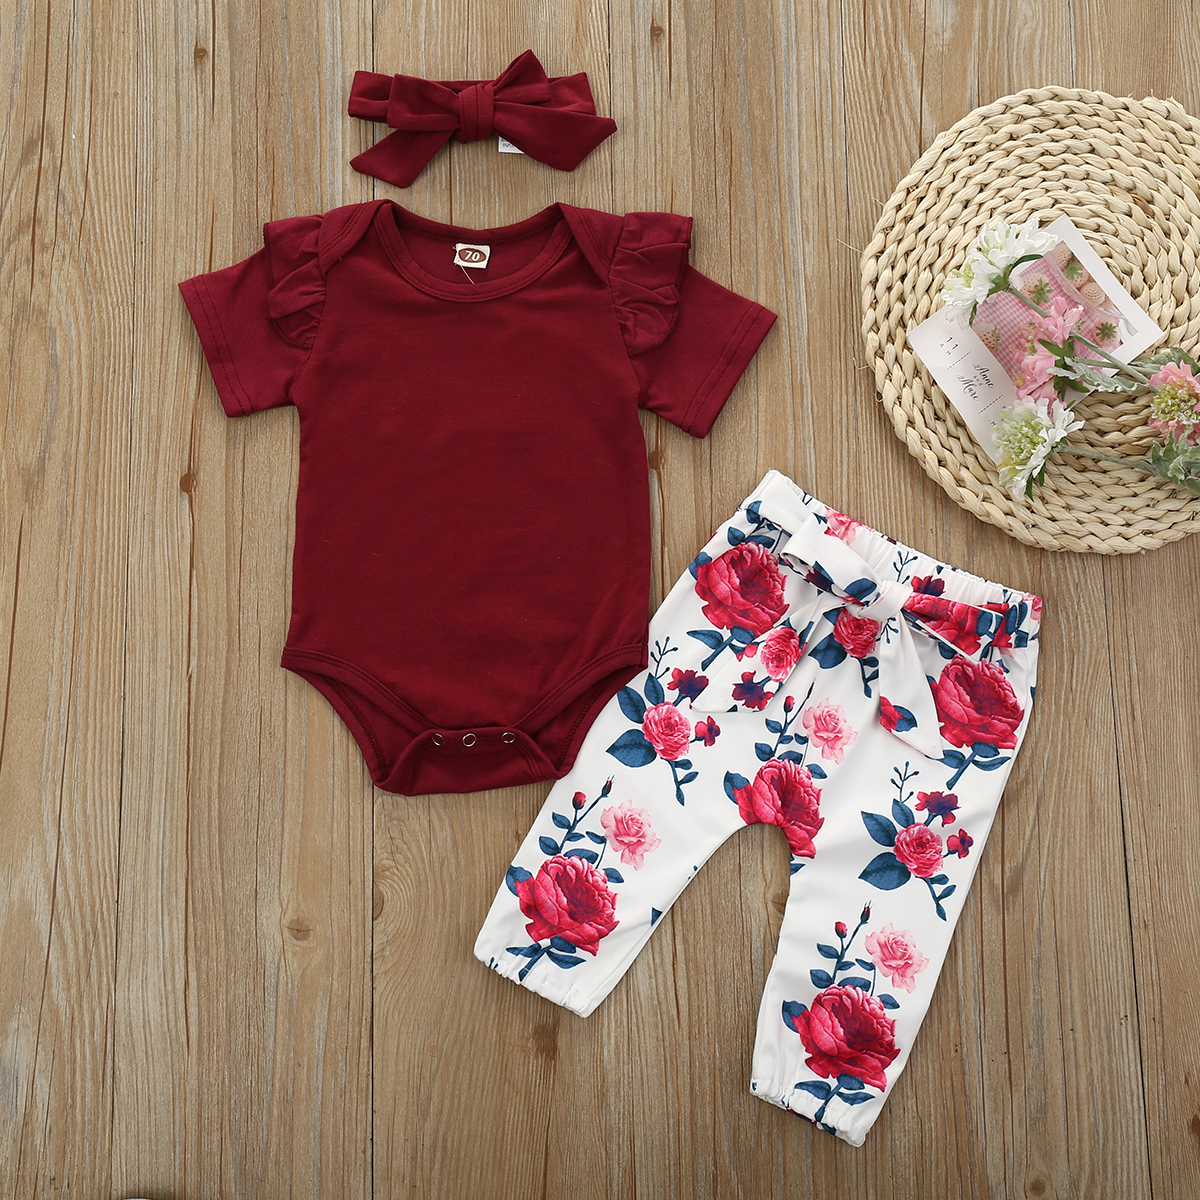 Pudcoco Newborn Baby Girl Clothes Solid Color Short Sleeve Knitted Cotton Romper Tops Flower Print Pants Headband 3Pcs Outfits